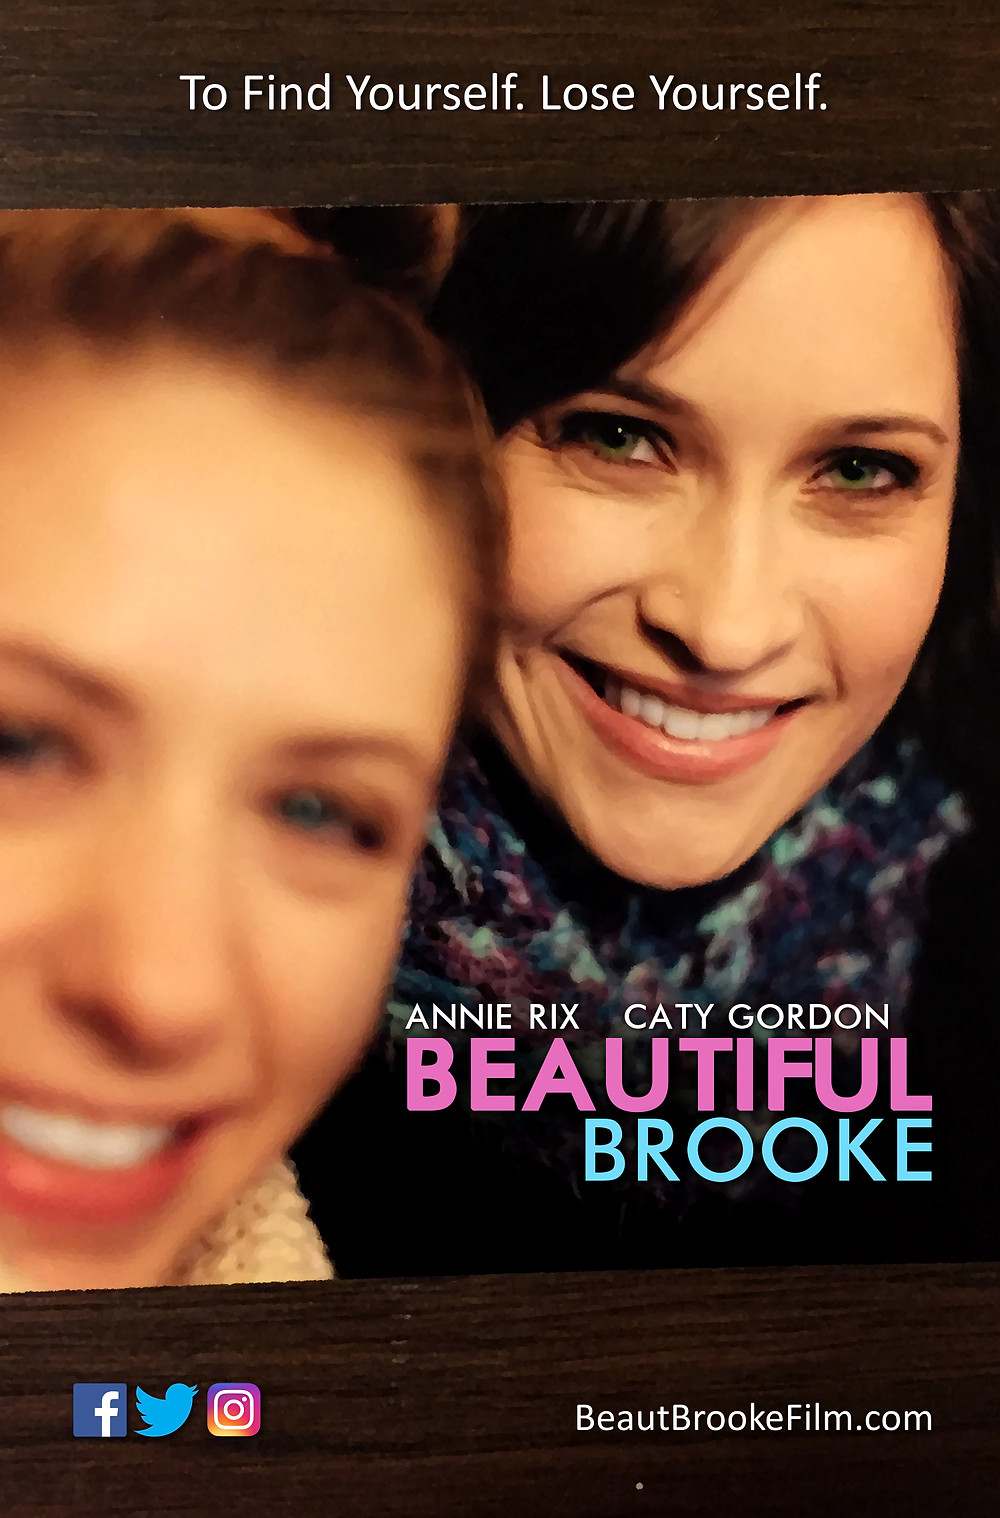 Beautiful Brooke indie film review